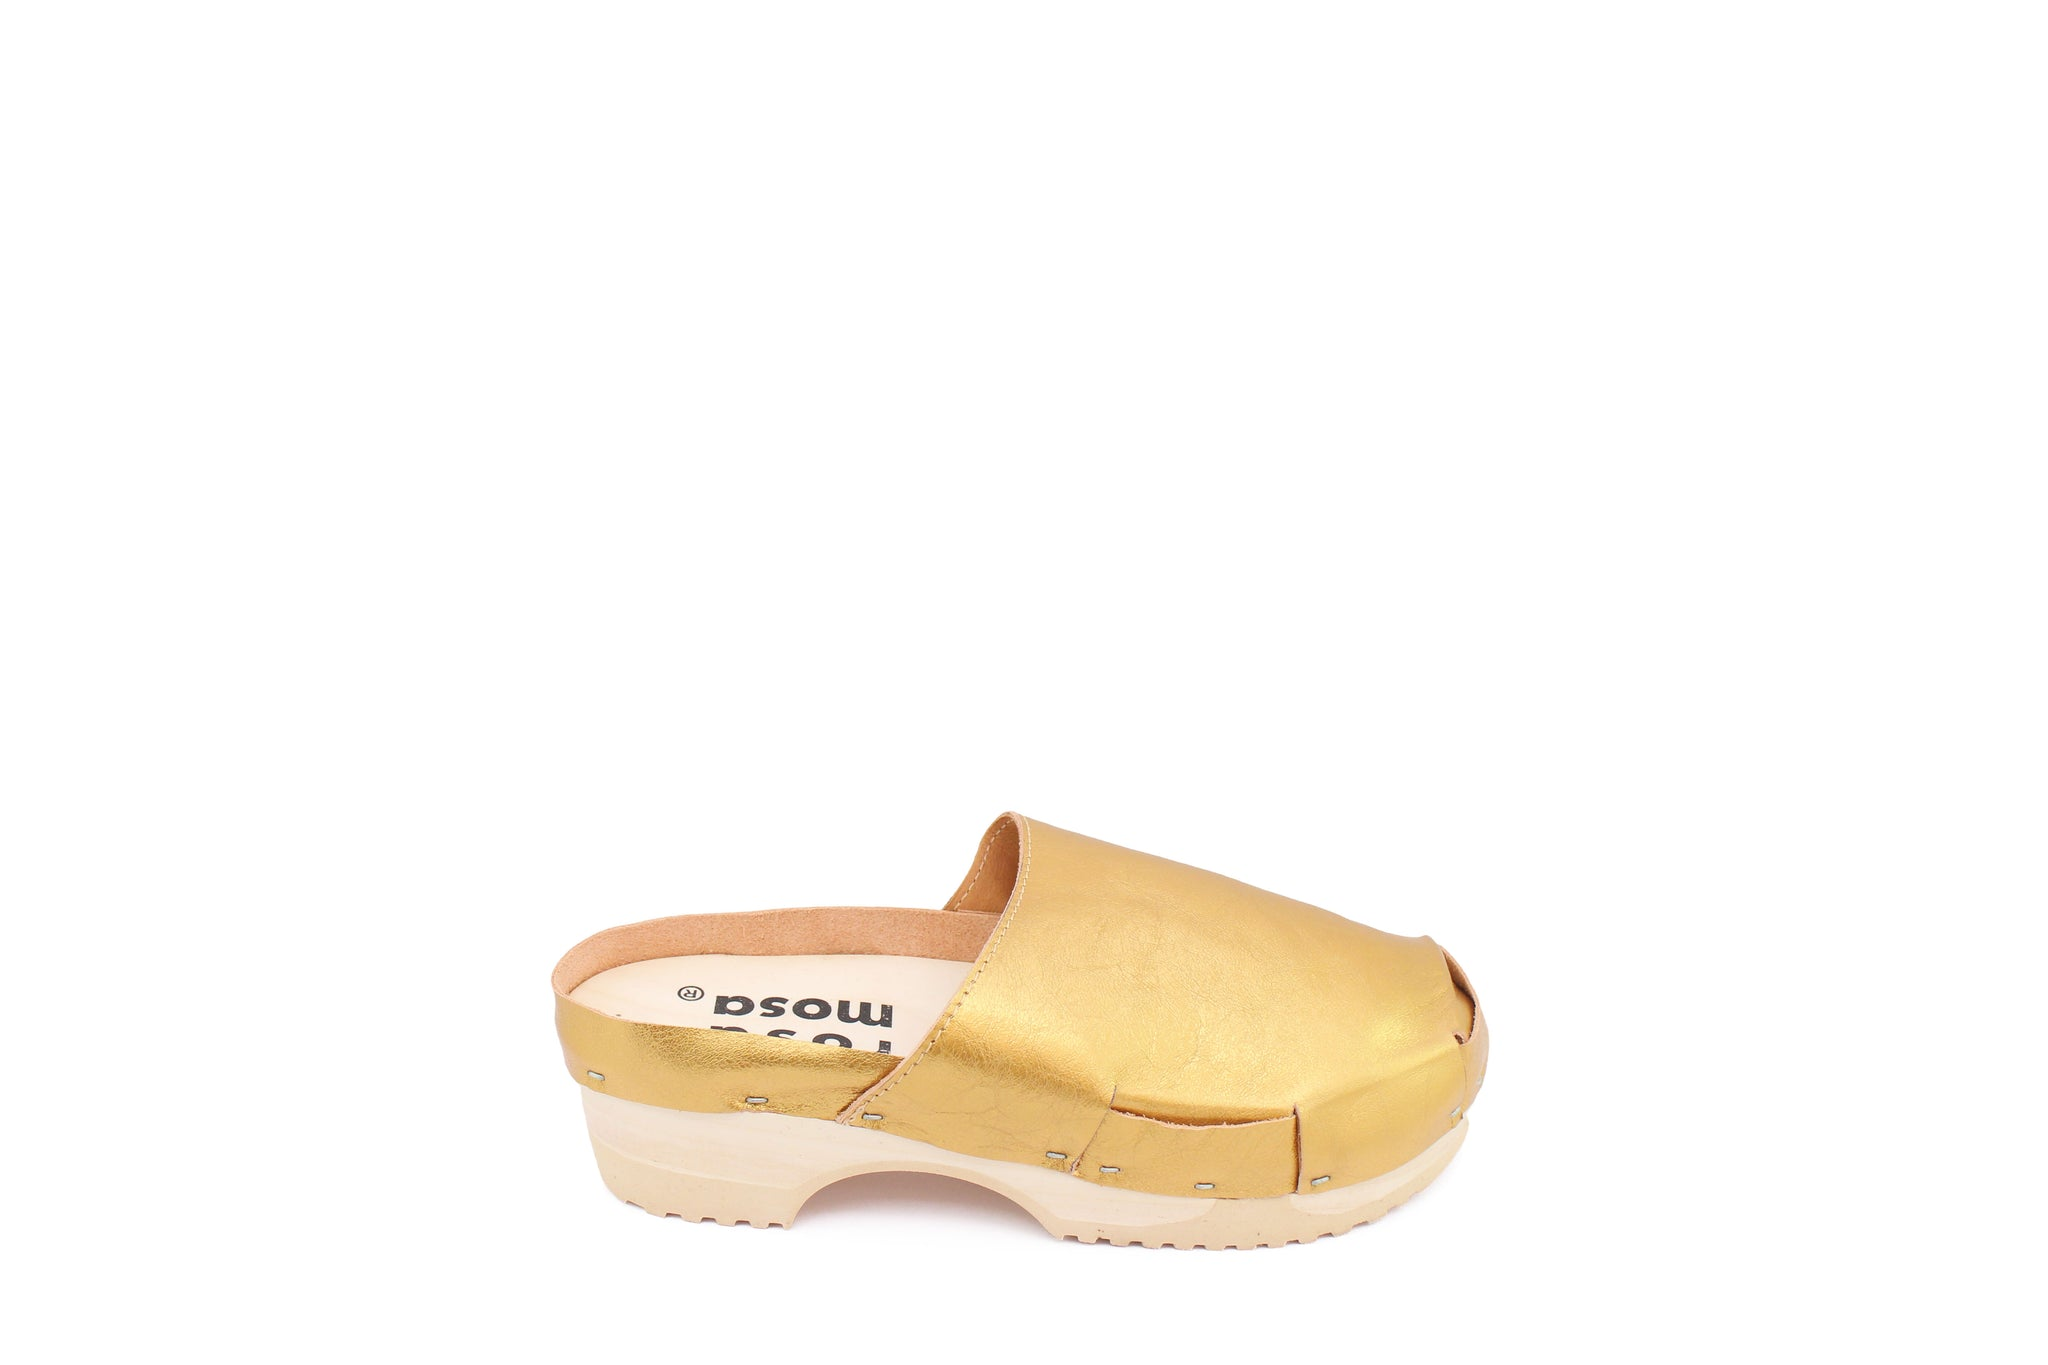 DONAU CLOG METALLIC GOLD